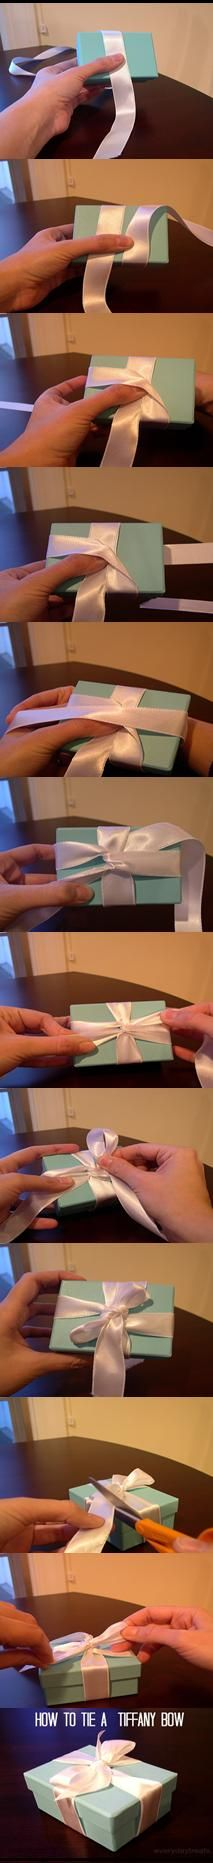 How to tie a Tiffany Bow